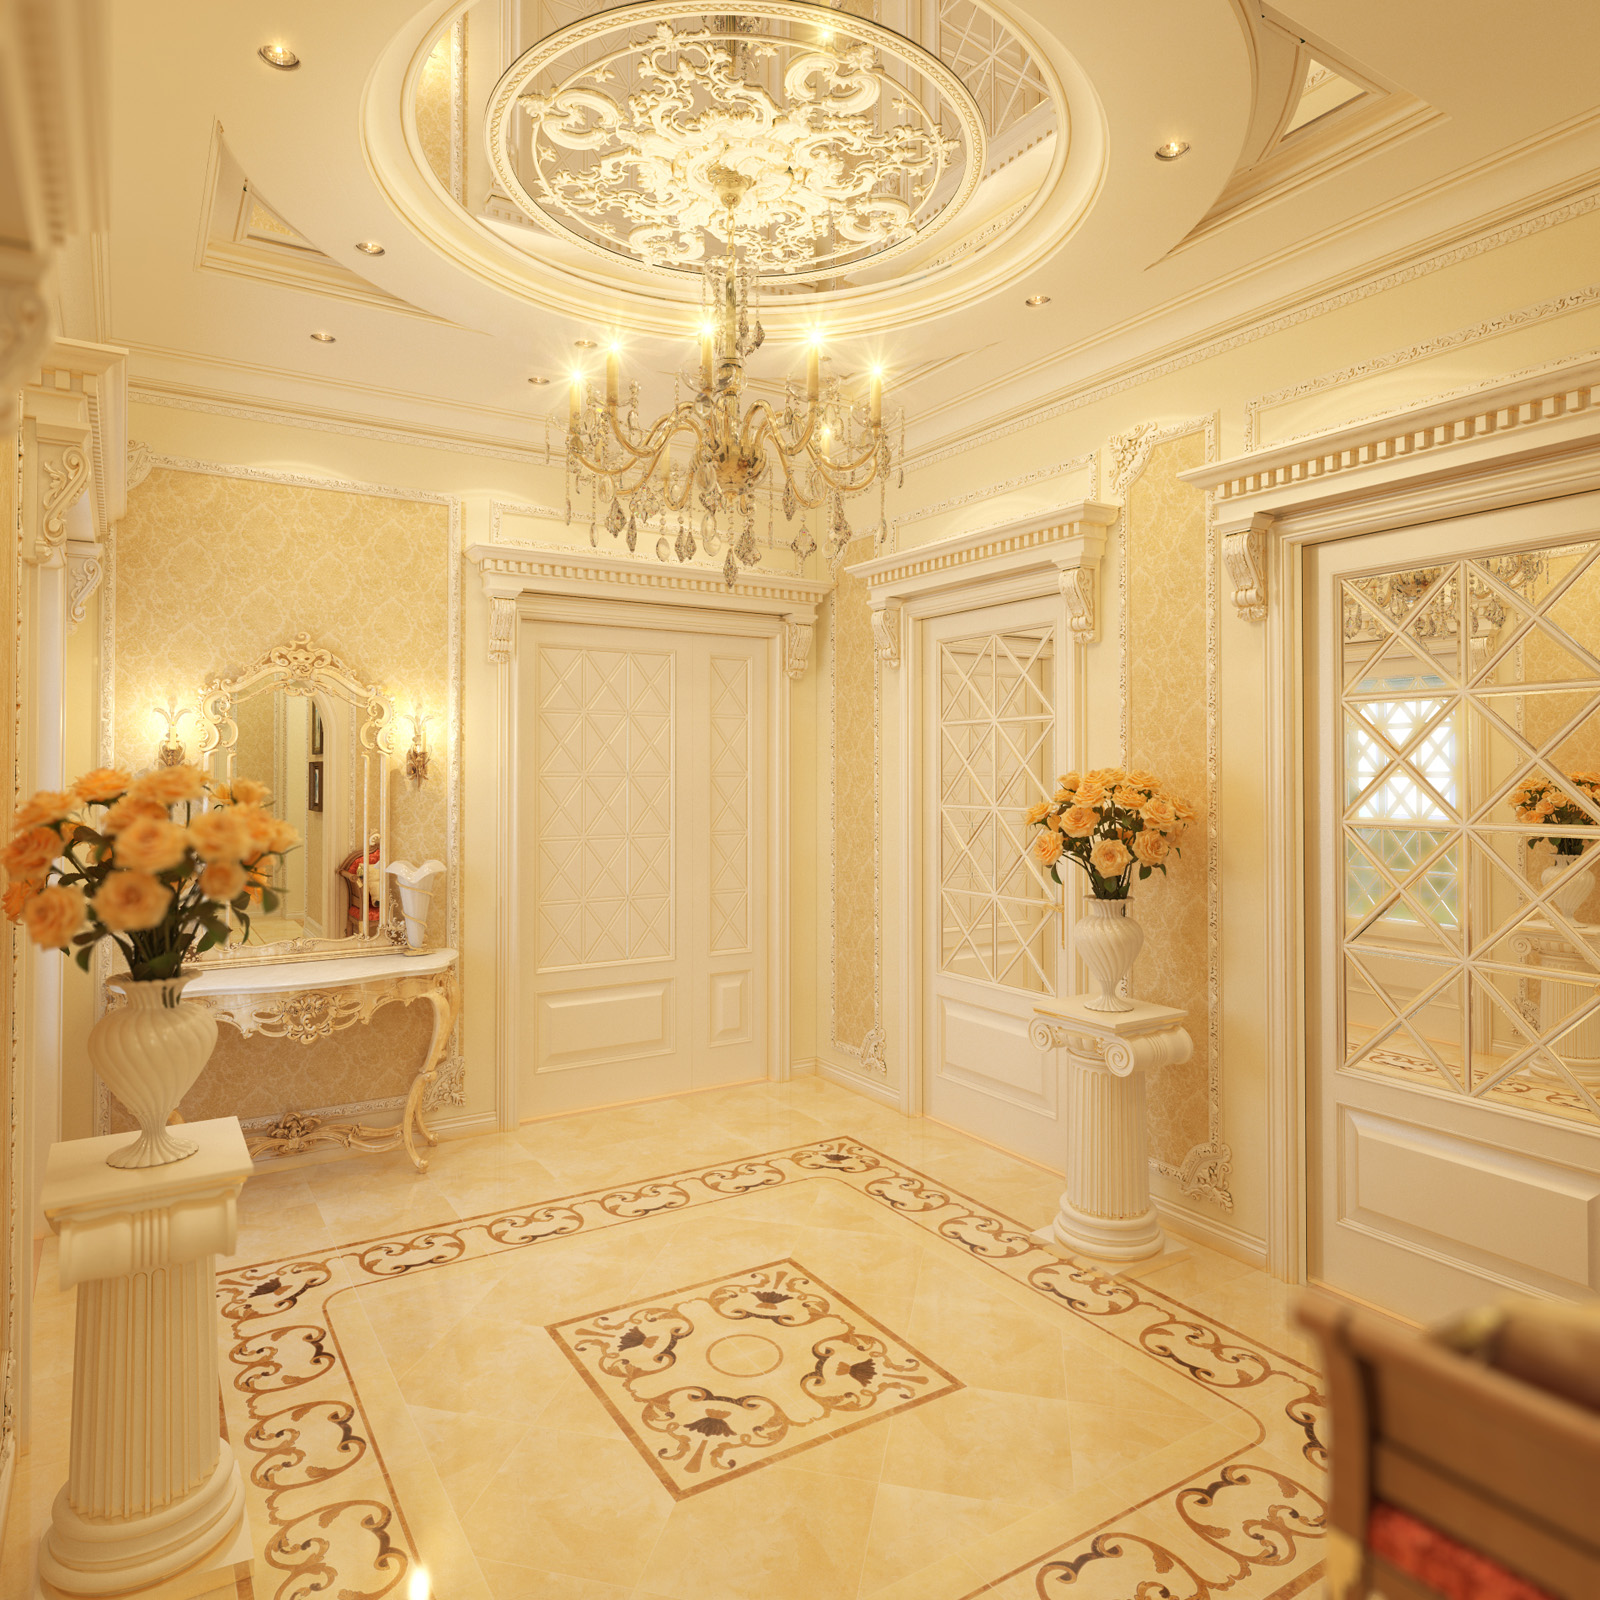 Royal home designs home designing - Designs of room ...